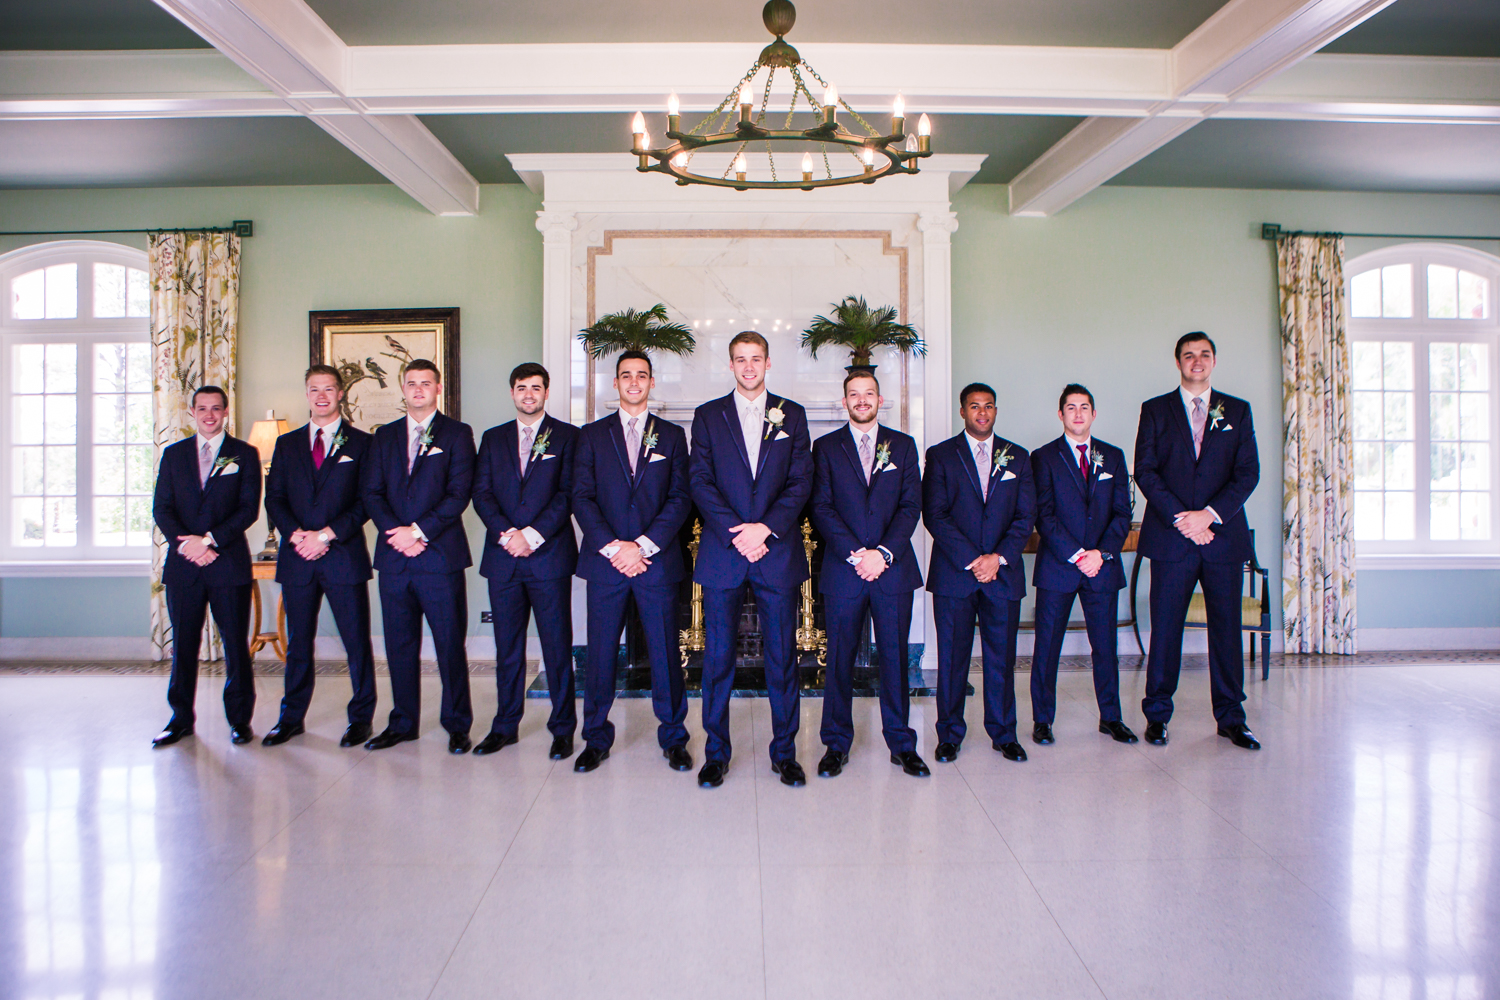 Groomsmen inside Highlands Ranch Mansion. Photographed by JMGant Photography, Denver Colorado wedding photographer.